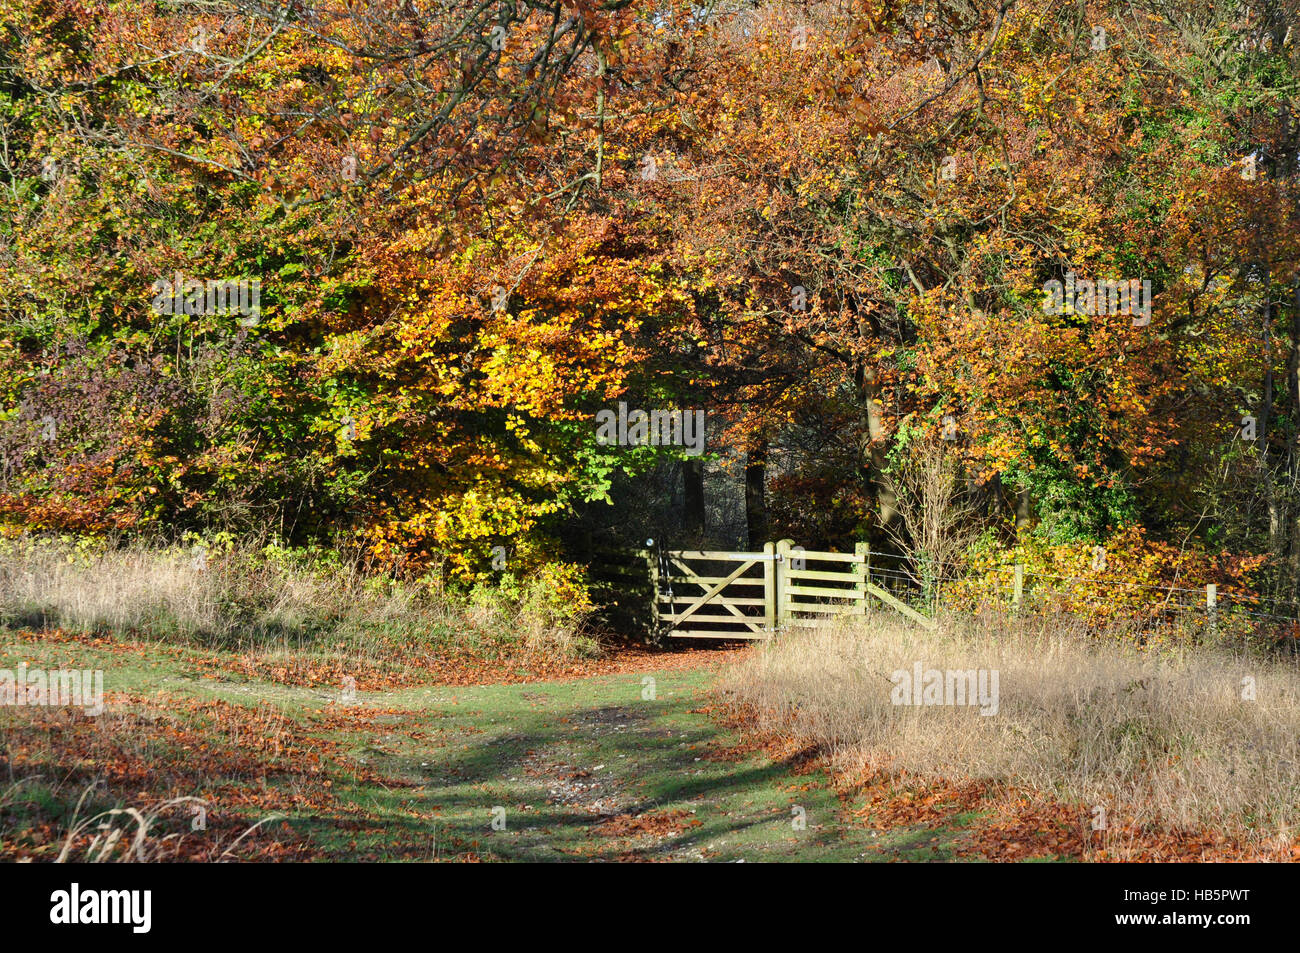 Autumn in the Chiltern Hills - footpath - woodland gate - ancient trees - russet green and gold leaves - sunlight - Stock Image